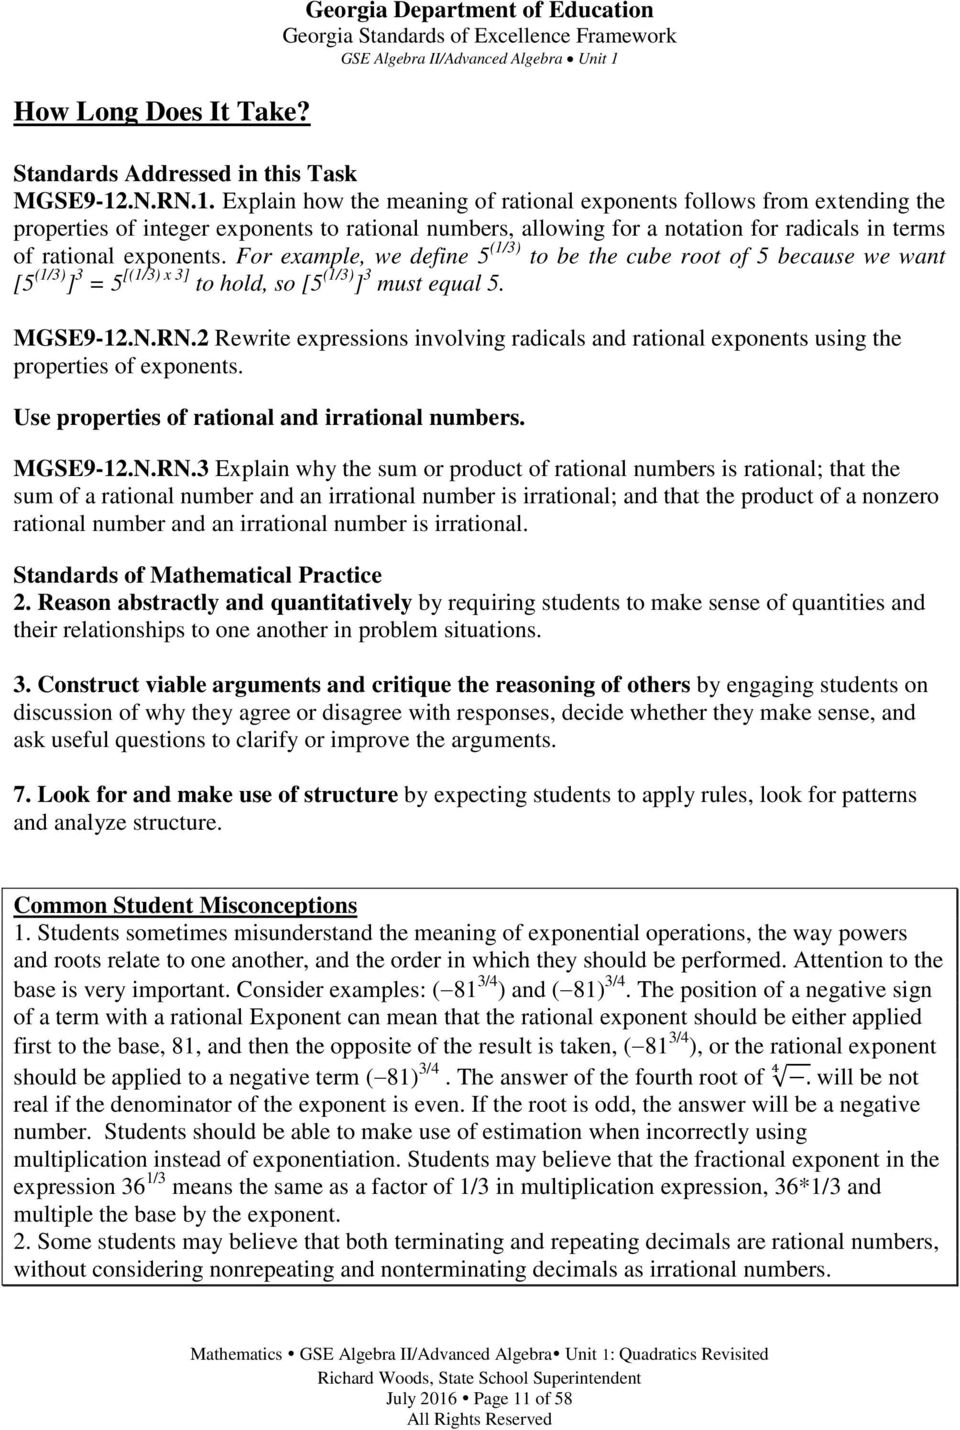 Georgia standards of excellence curriculum frameworks mathematics explain how the meaning of rational exponents follows from extending the properties of integer exponents to fandeluxe Choice Image